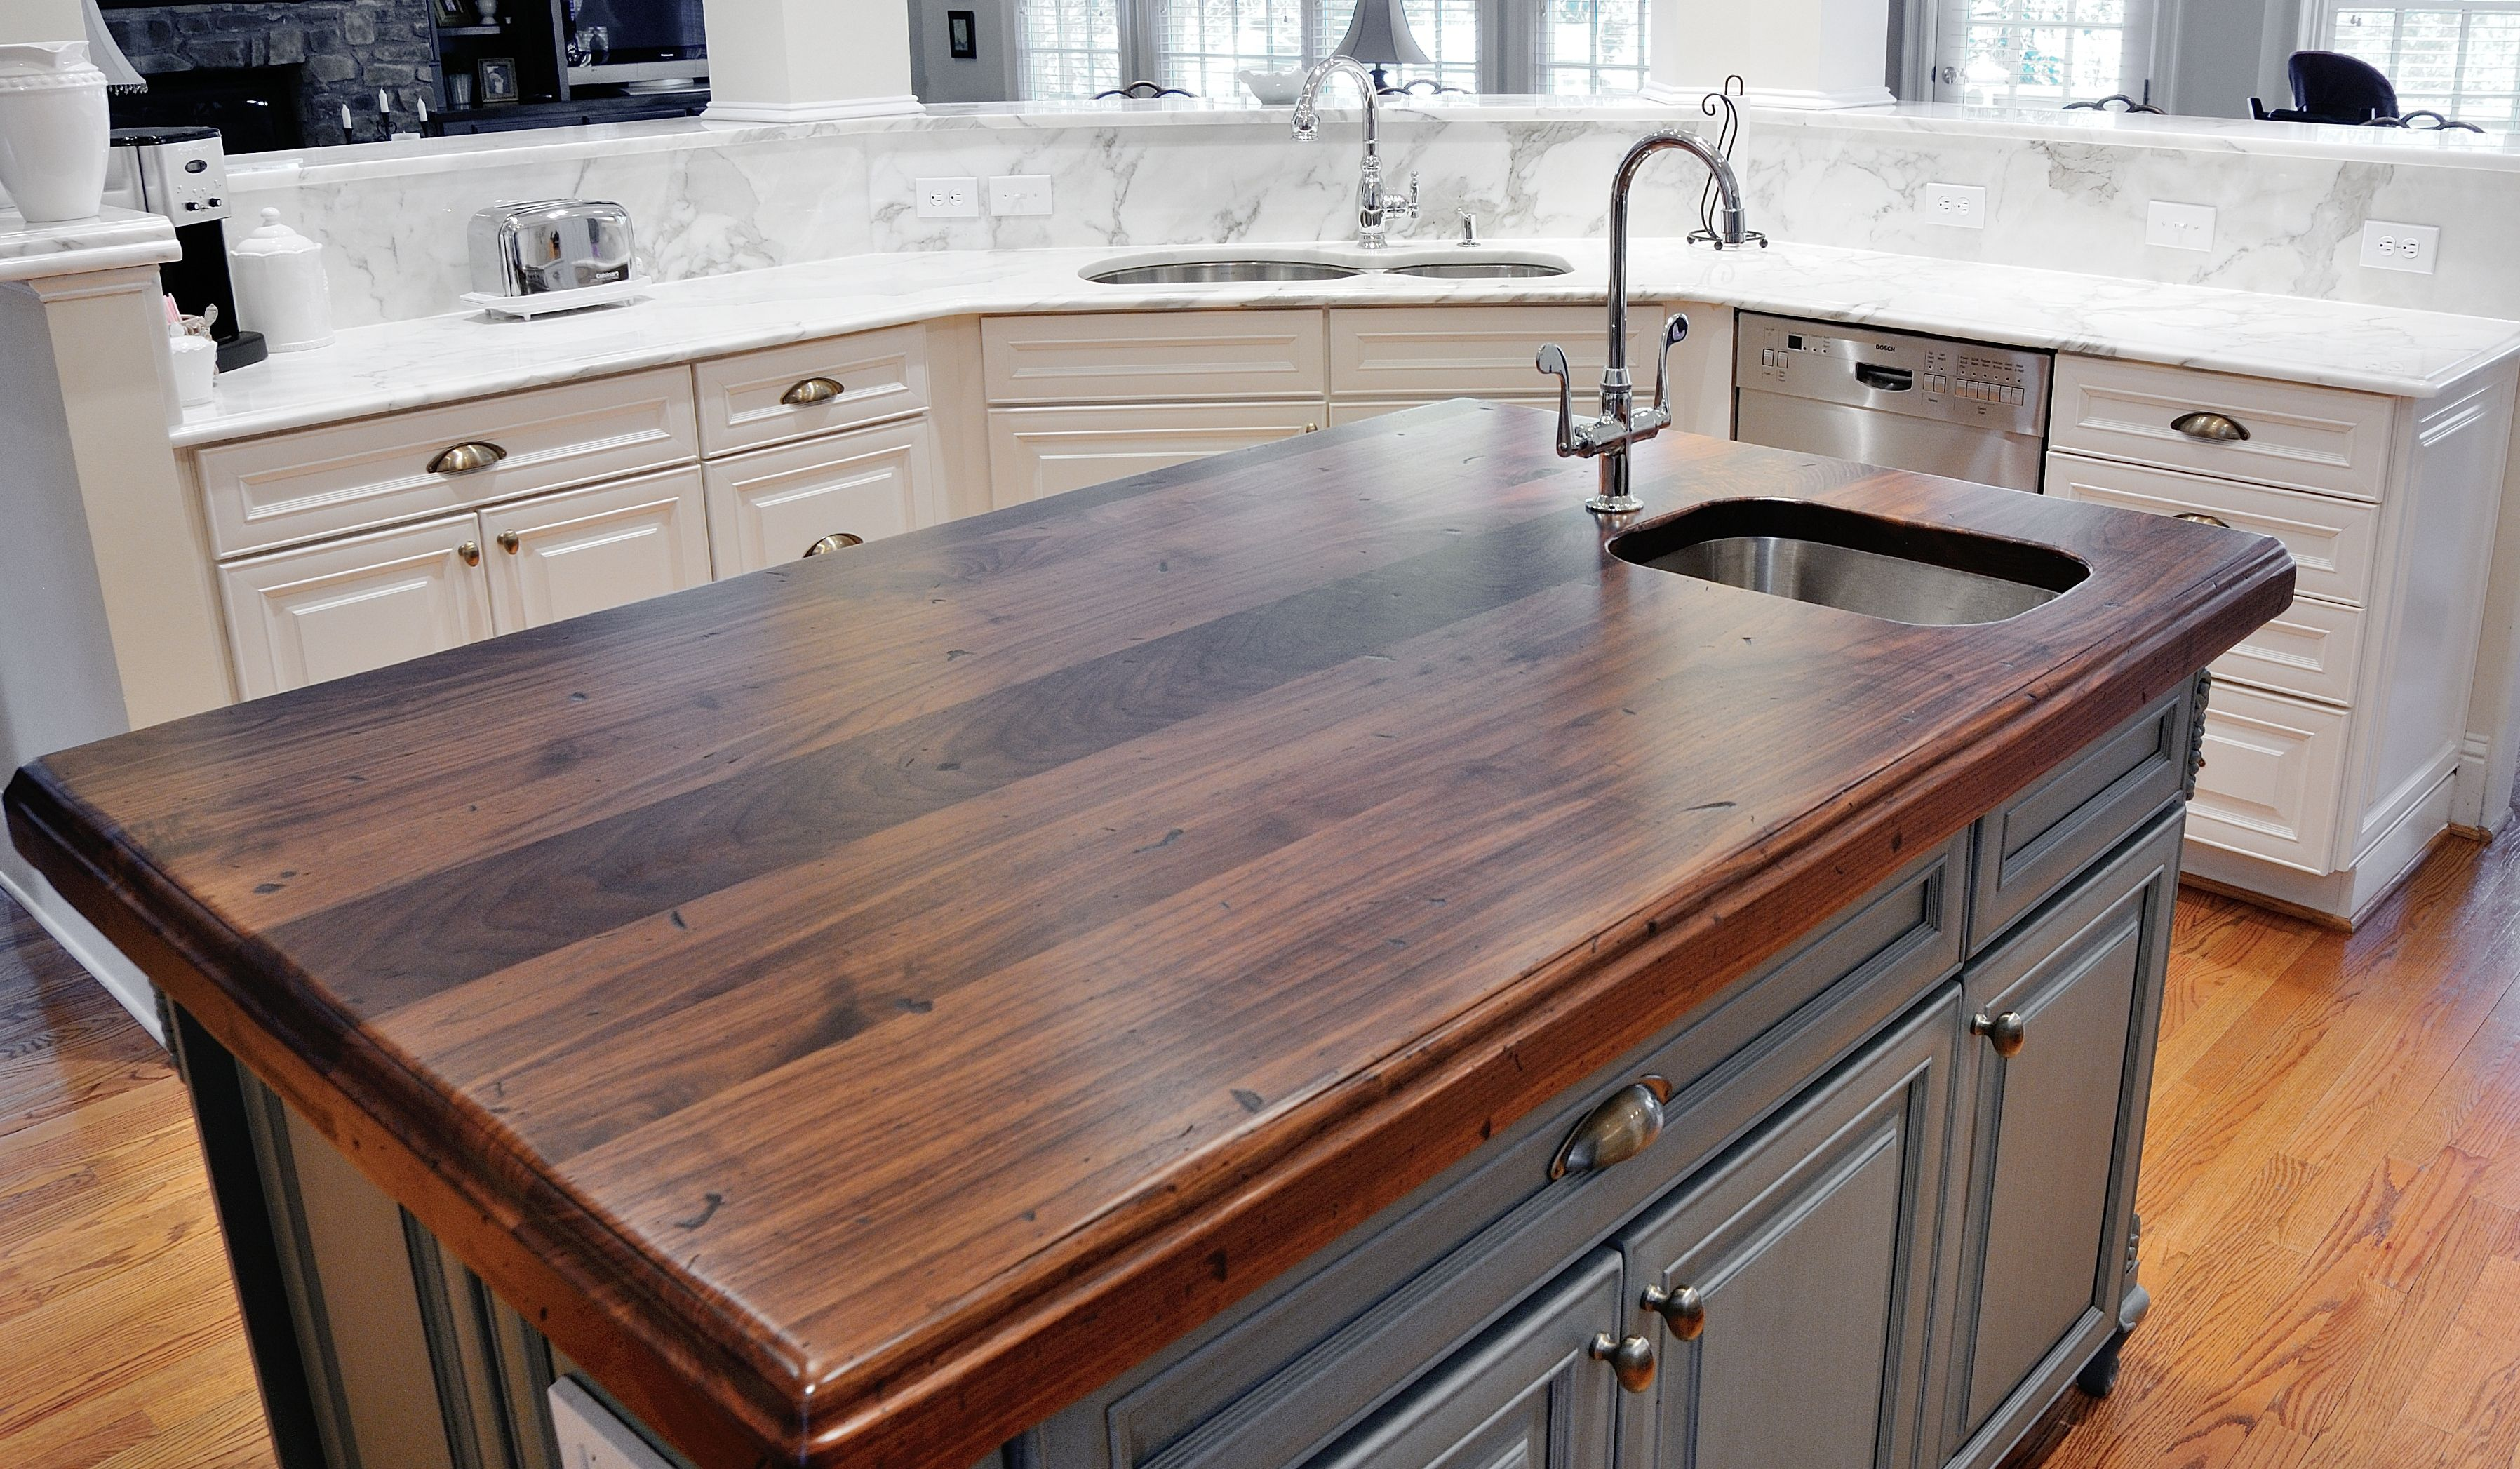 Heirloom Wood Countertops Distressed Black Walnut Heritage Wood By Artisan Stone